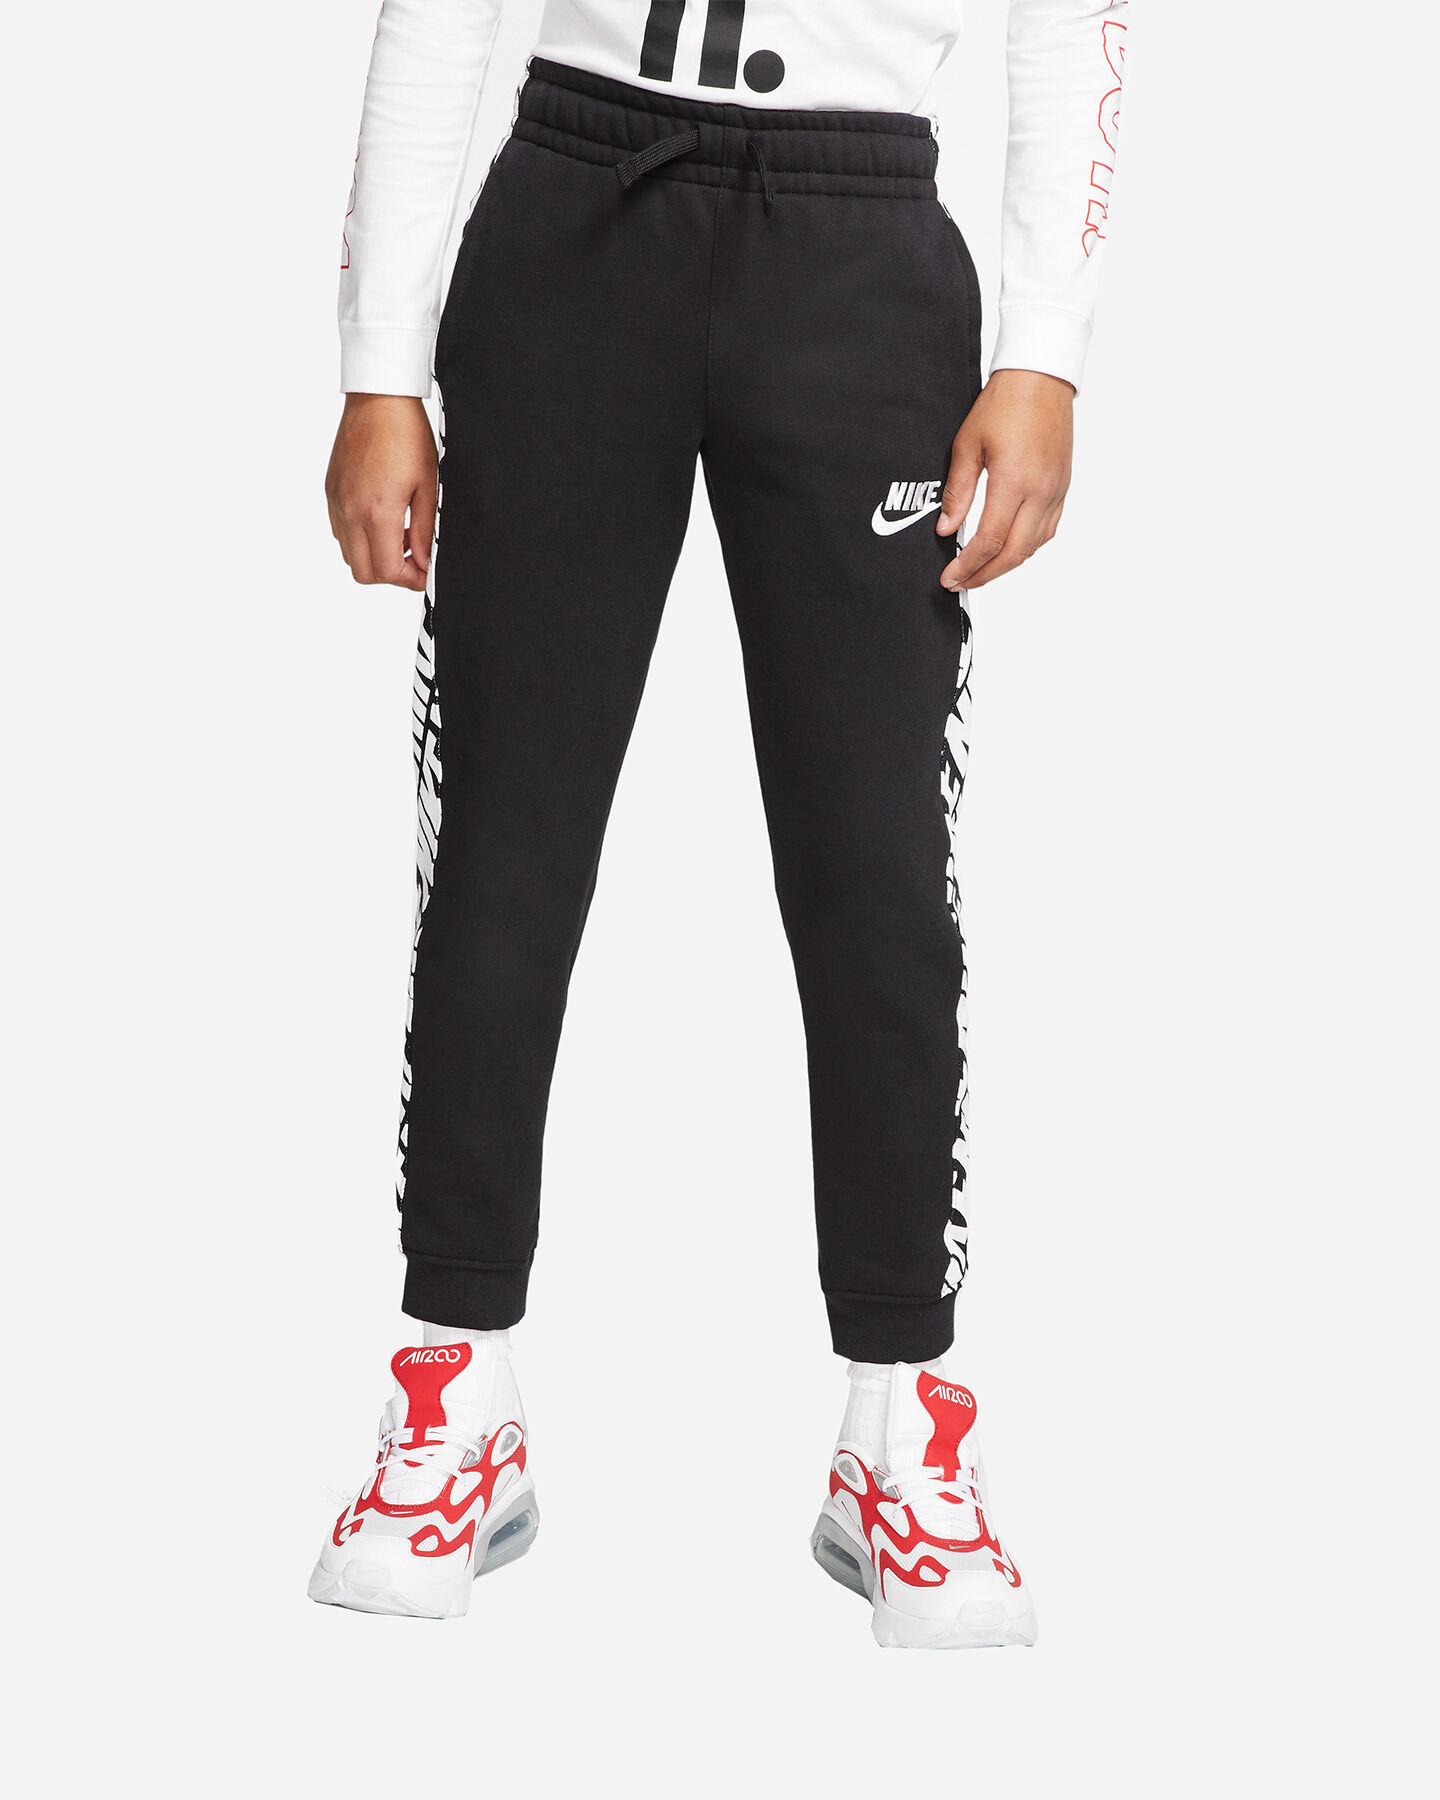 Pantalone NIKE FNG TAPE JR S5164649 scatto 0